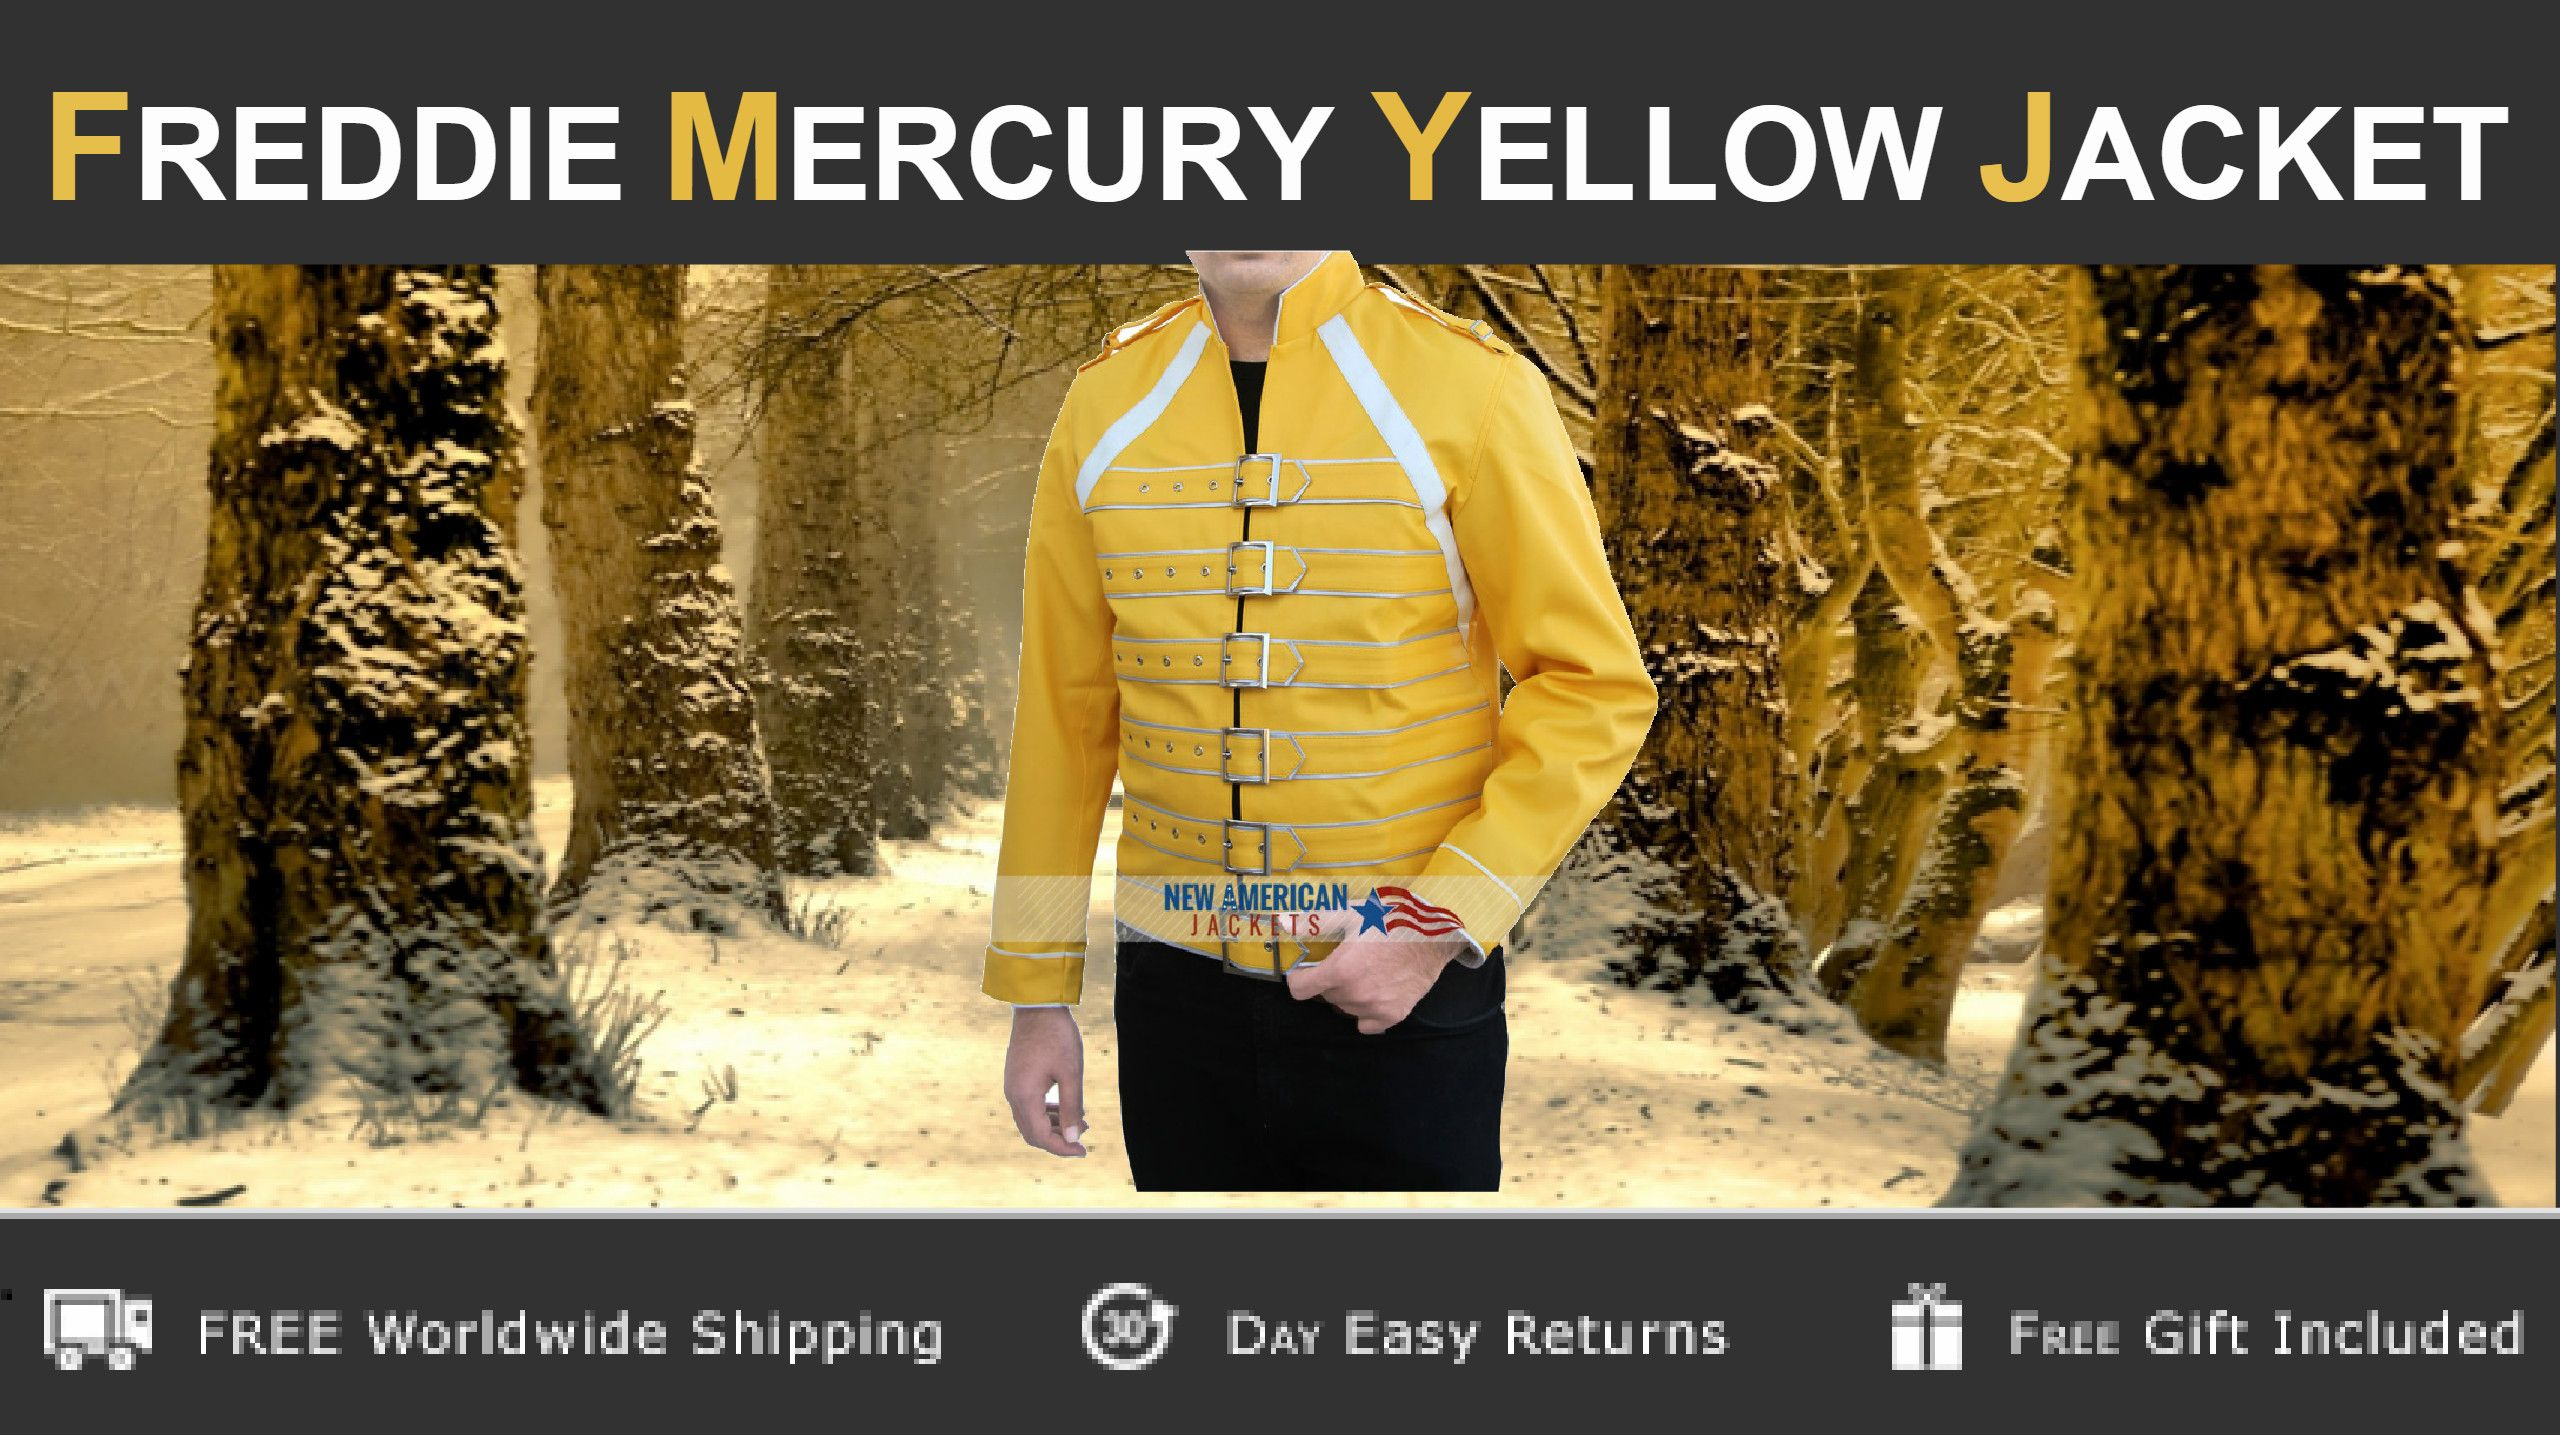 Special winter Sale! This Freddie Mercury Yellow Jacket is marvelous outfit on sale at discounted price.   #winterSale #FreddieMercury #Celebrity #Christmas #everydaystyle #styleinspo #styleatanyage #clothes #fashiondaily #fashionlovers #fashiondesigner #Christmassale2015